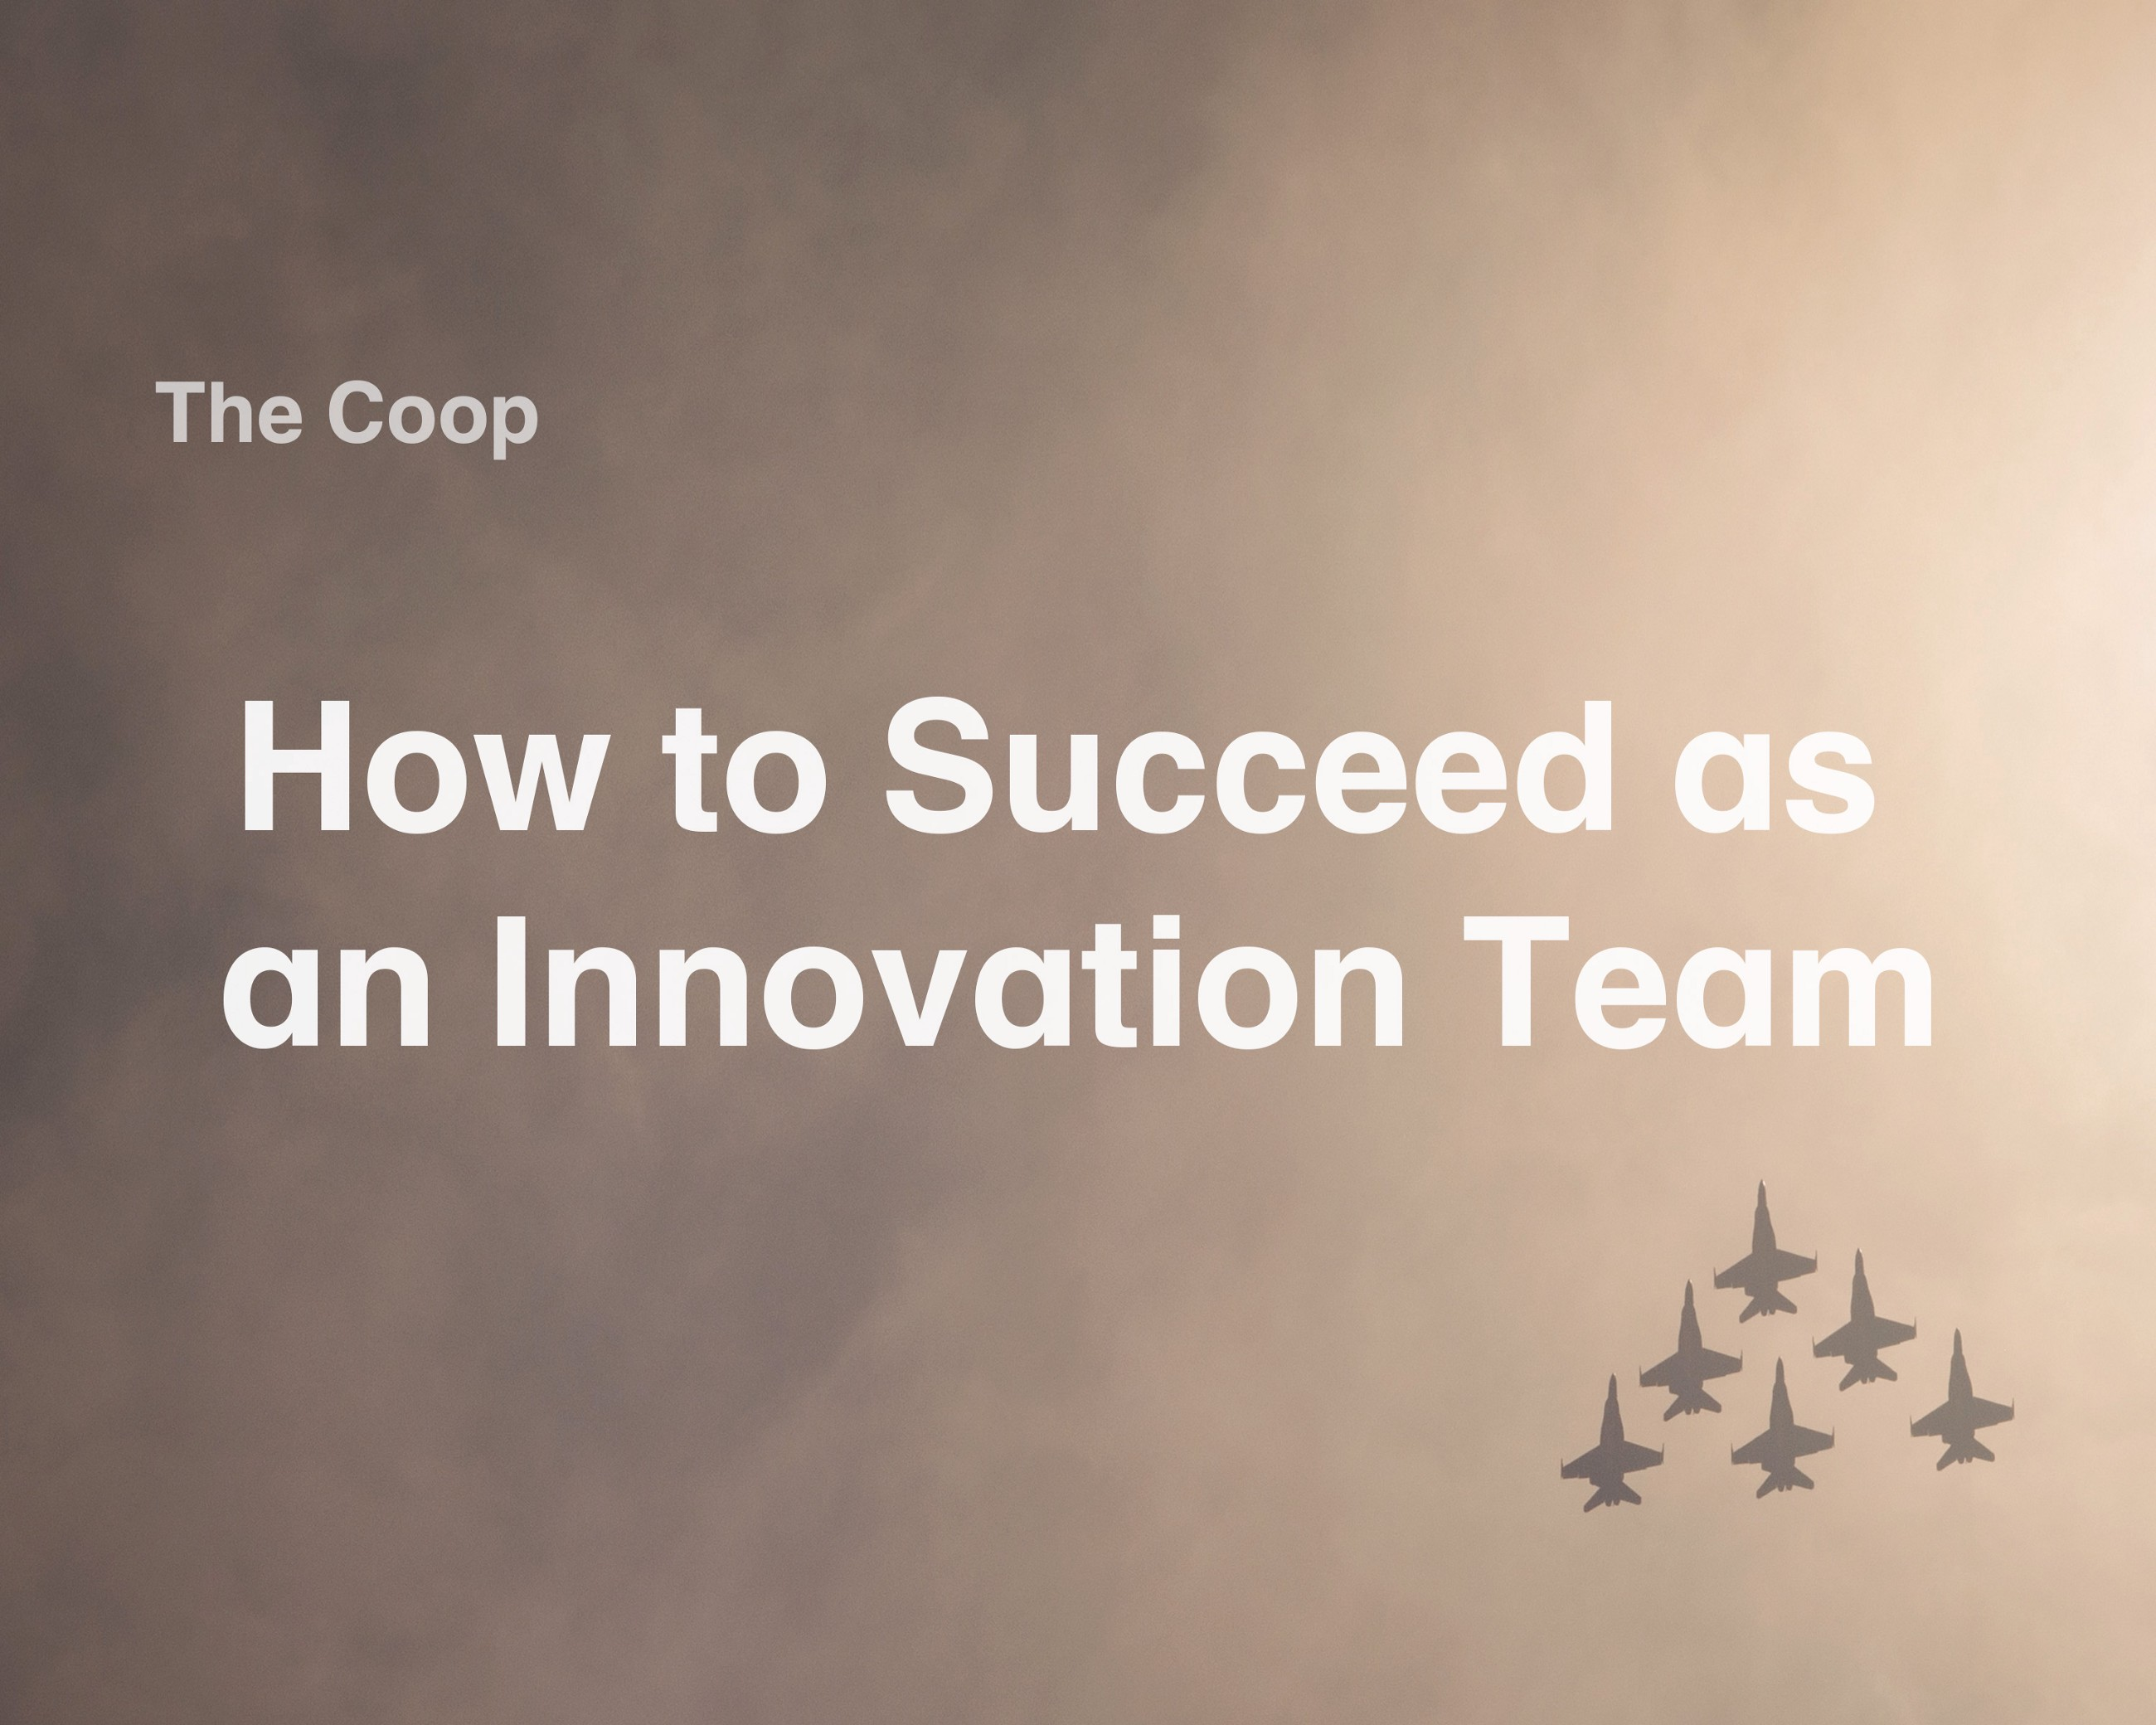 How to Succeed as an Innovation Team